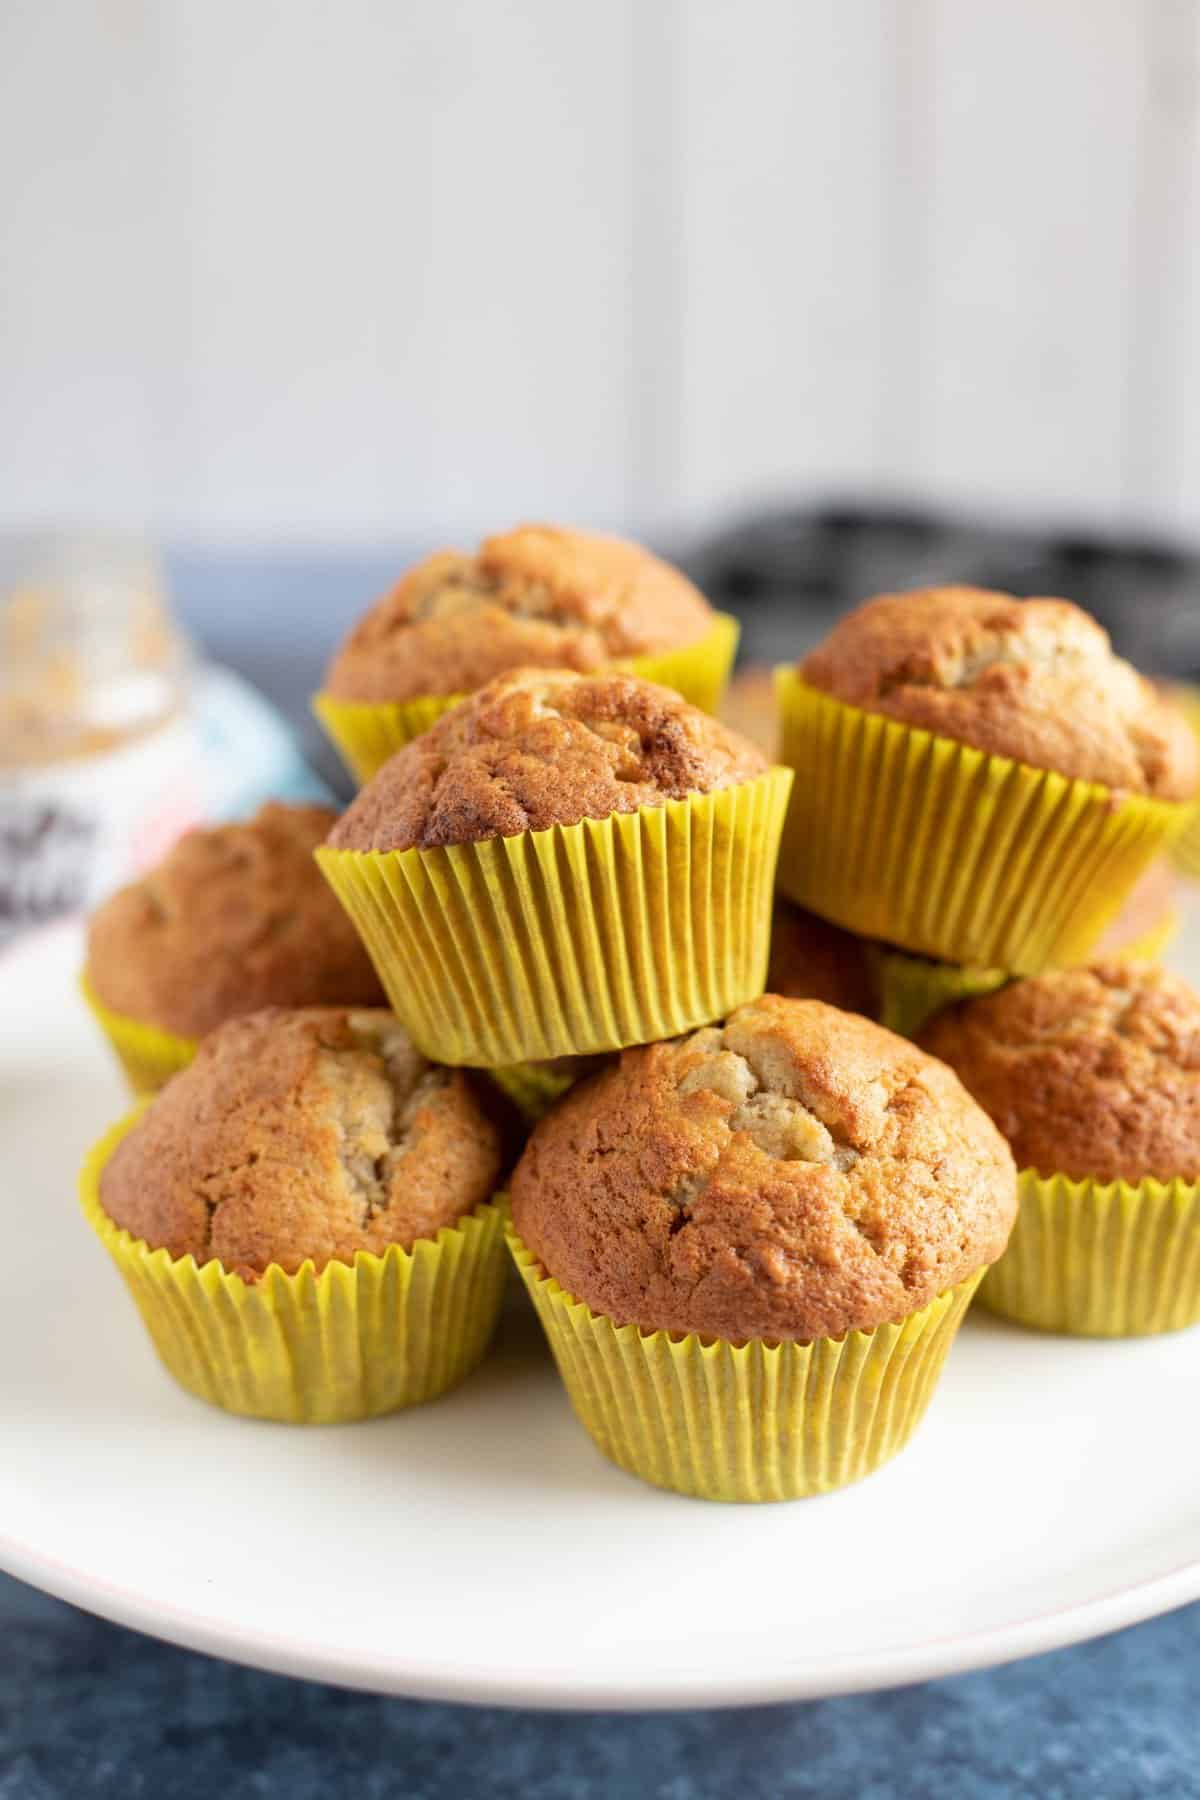 Banana and Peanut Butter Muffins on a cake stand.